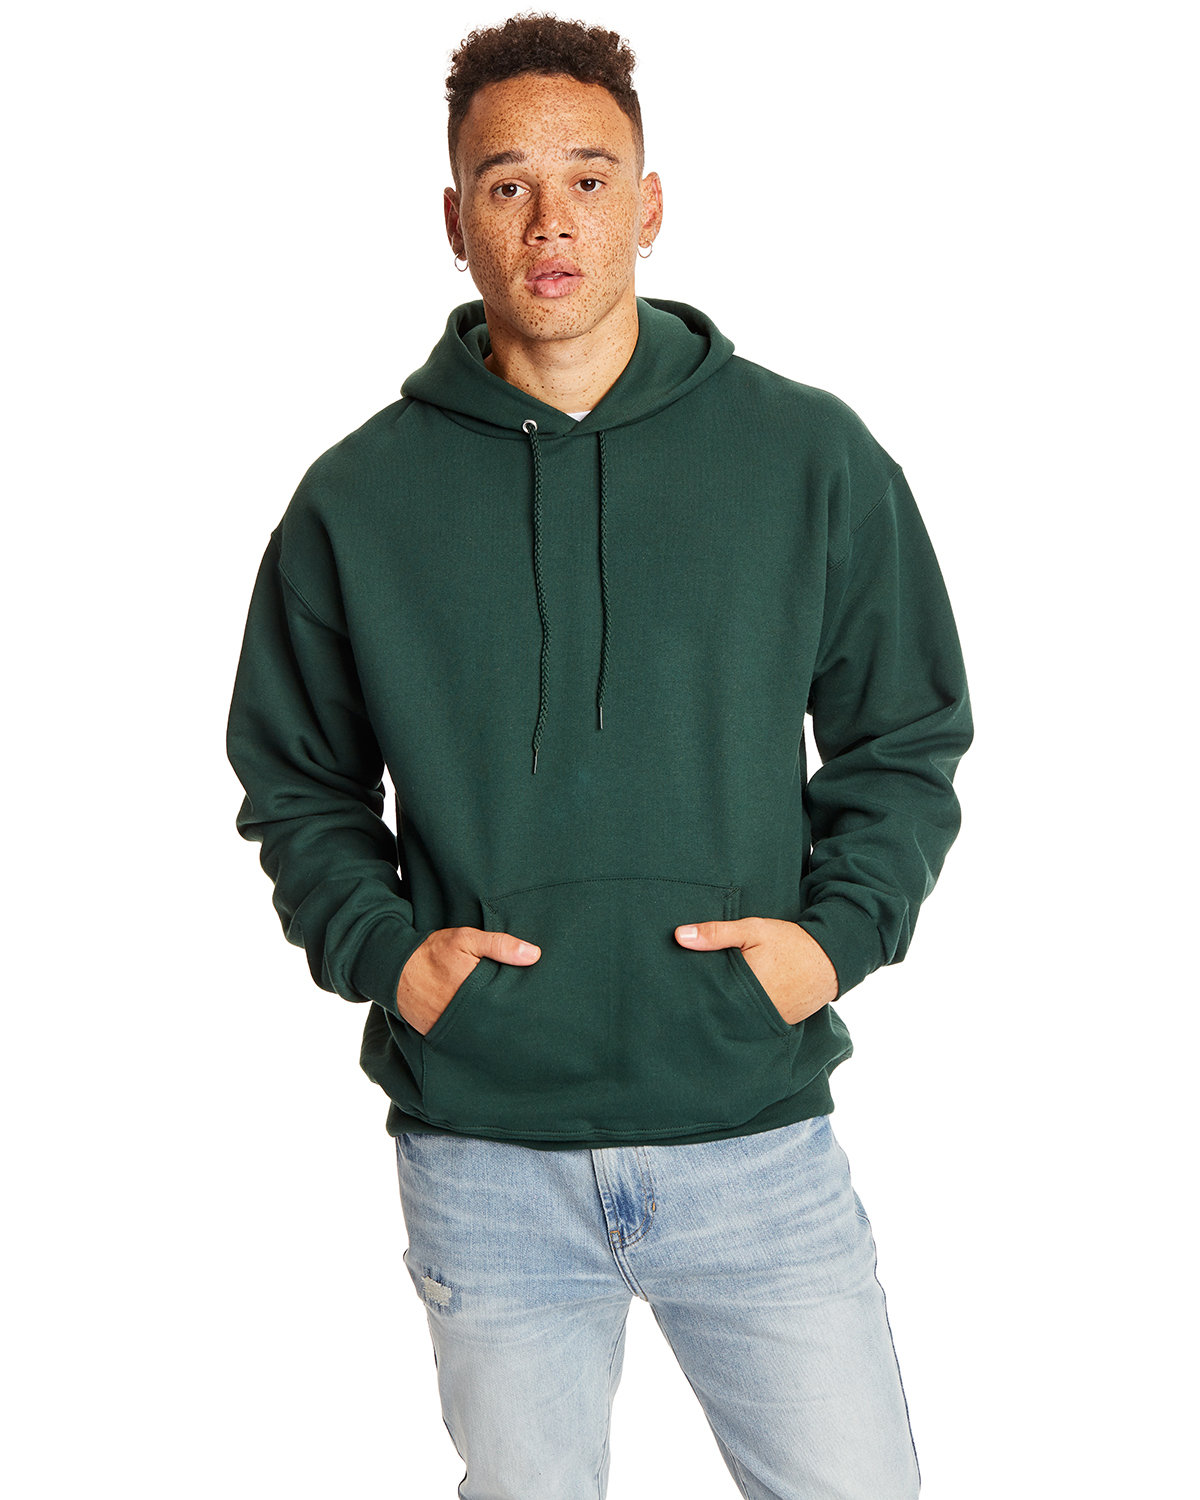 Hanes Adult Ultimate Cotton® 90/10 Pullover Hooded Sweatshirt DEEP FOREST